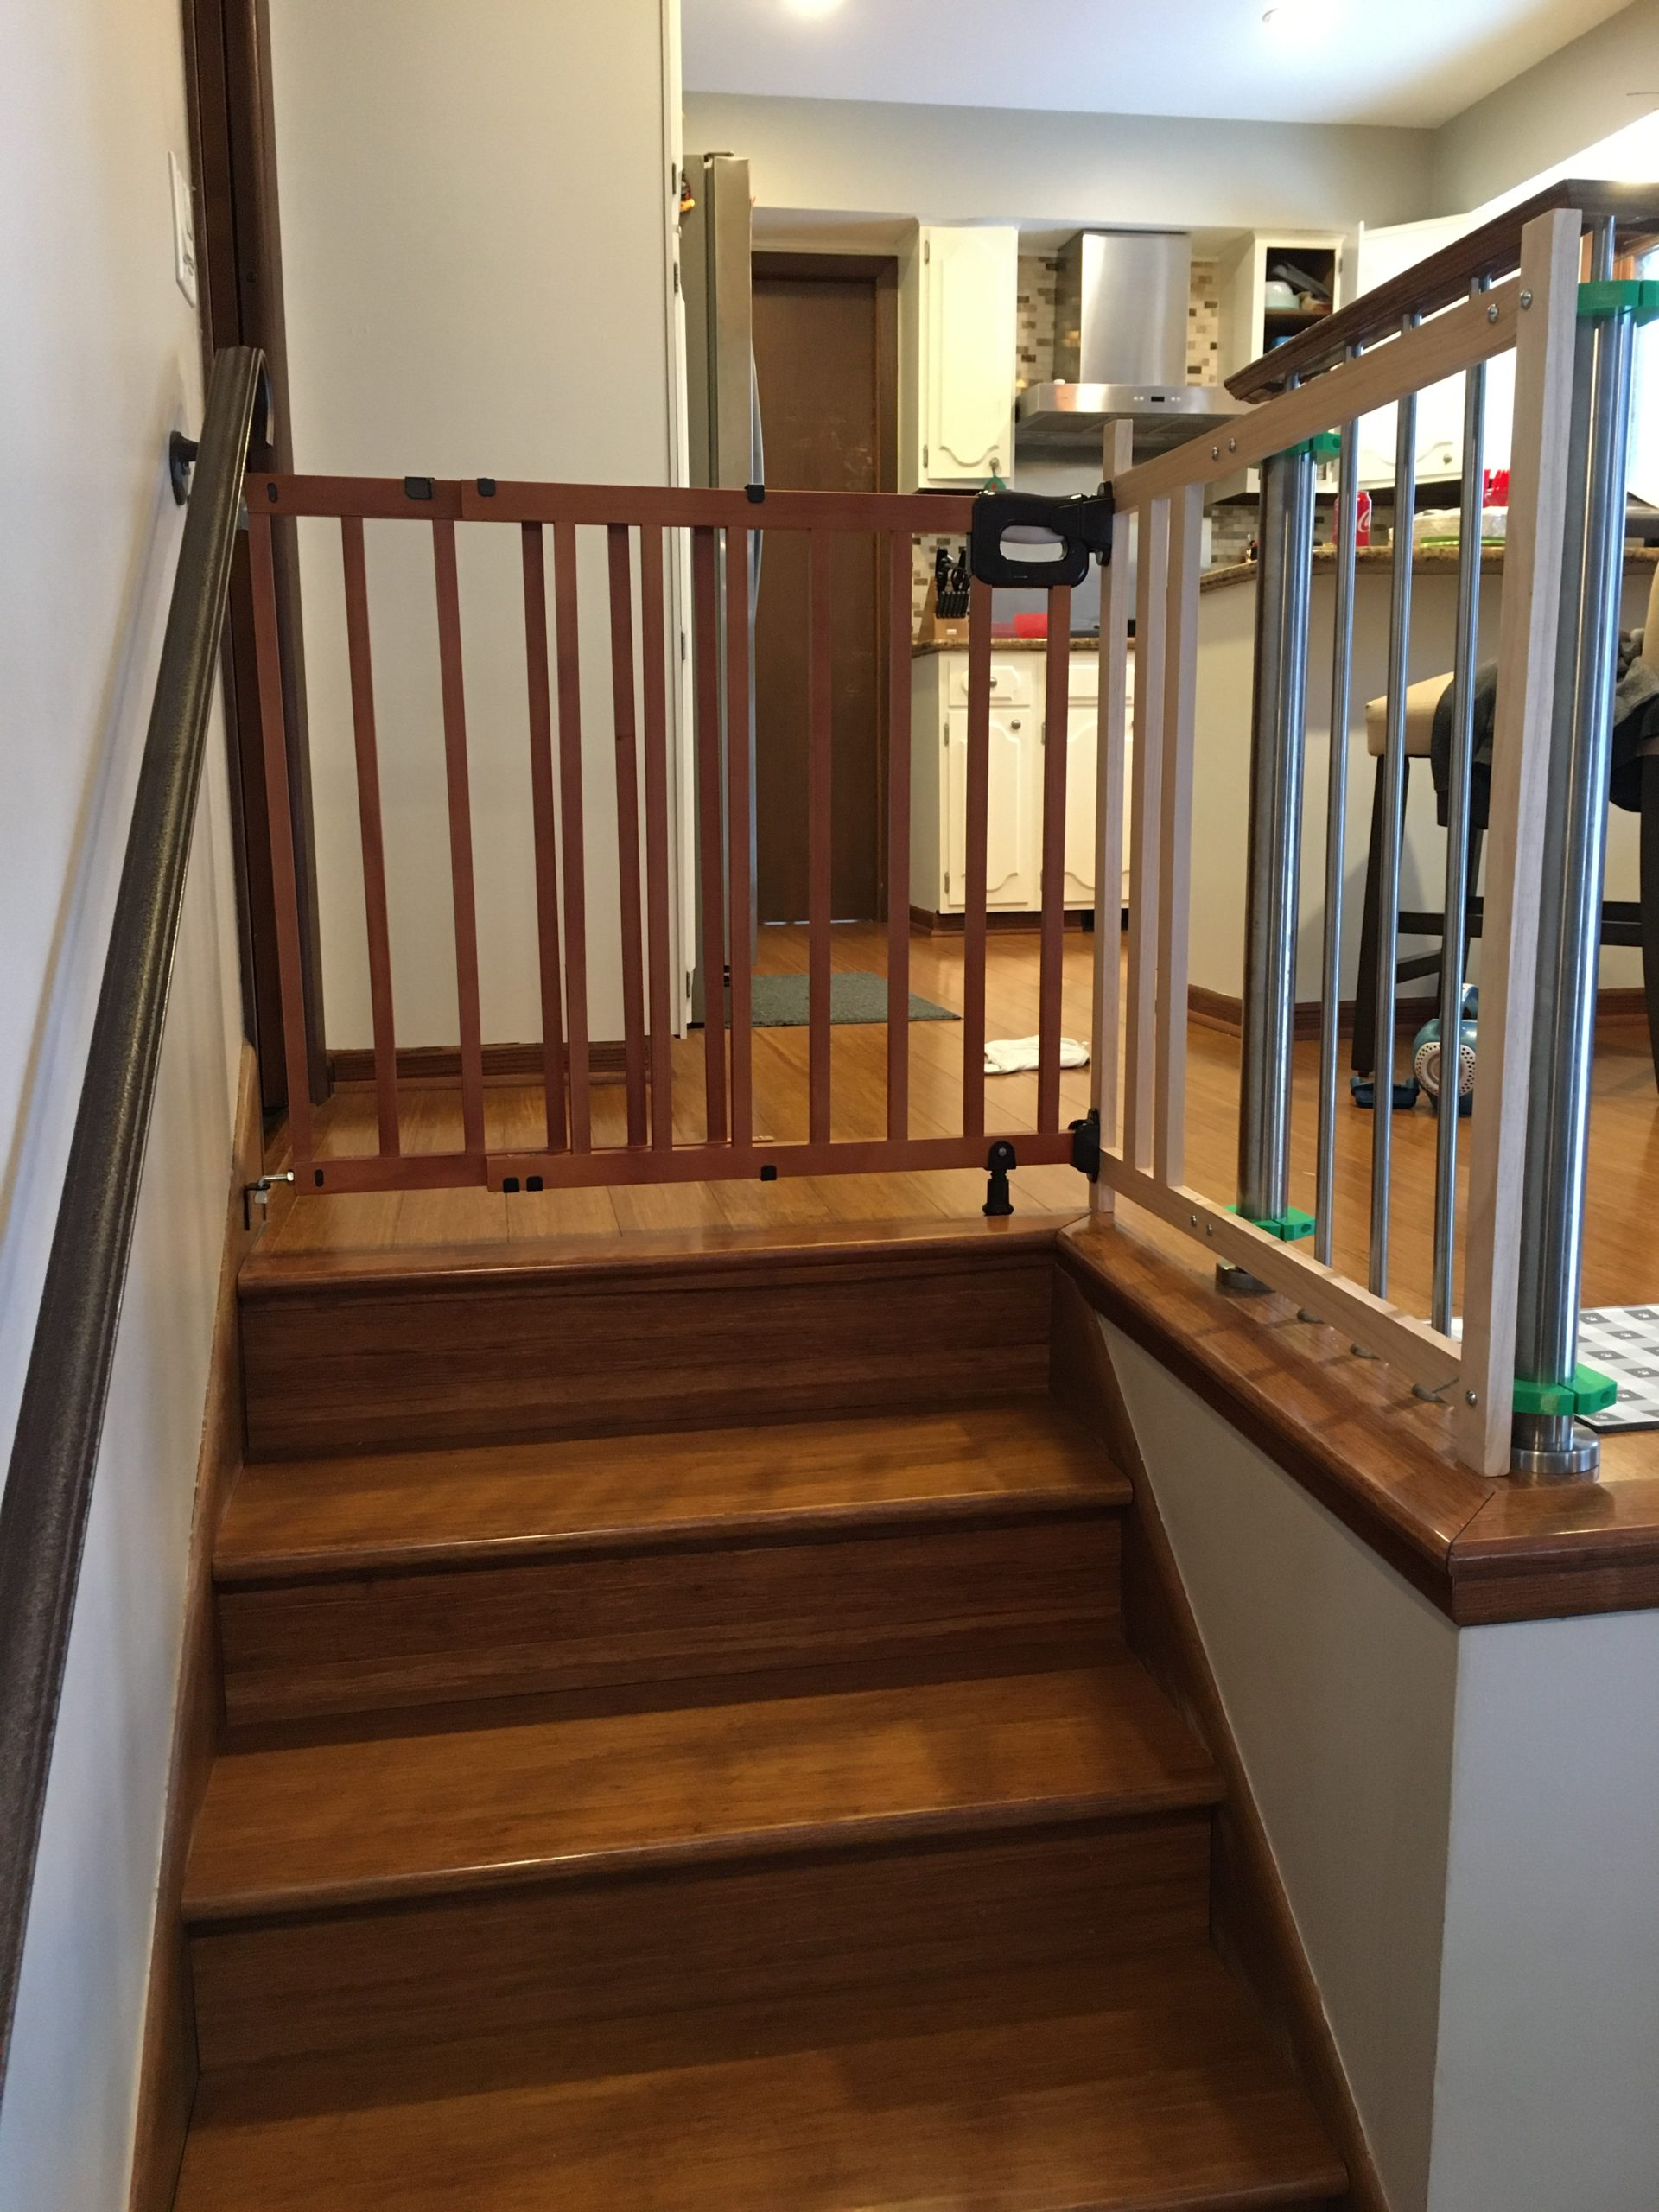 Semi-permanent Railing Extension For Baby Gate - Spurious ...